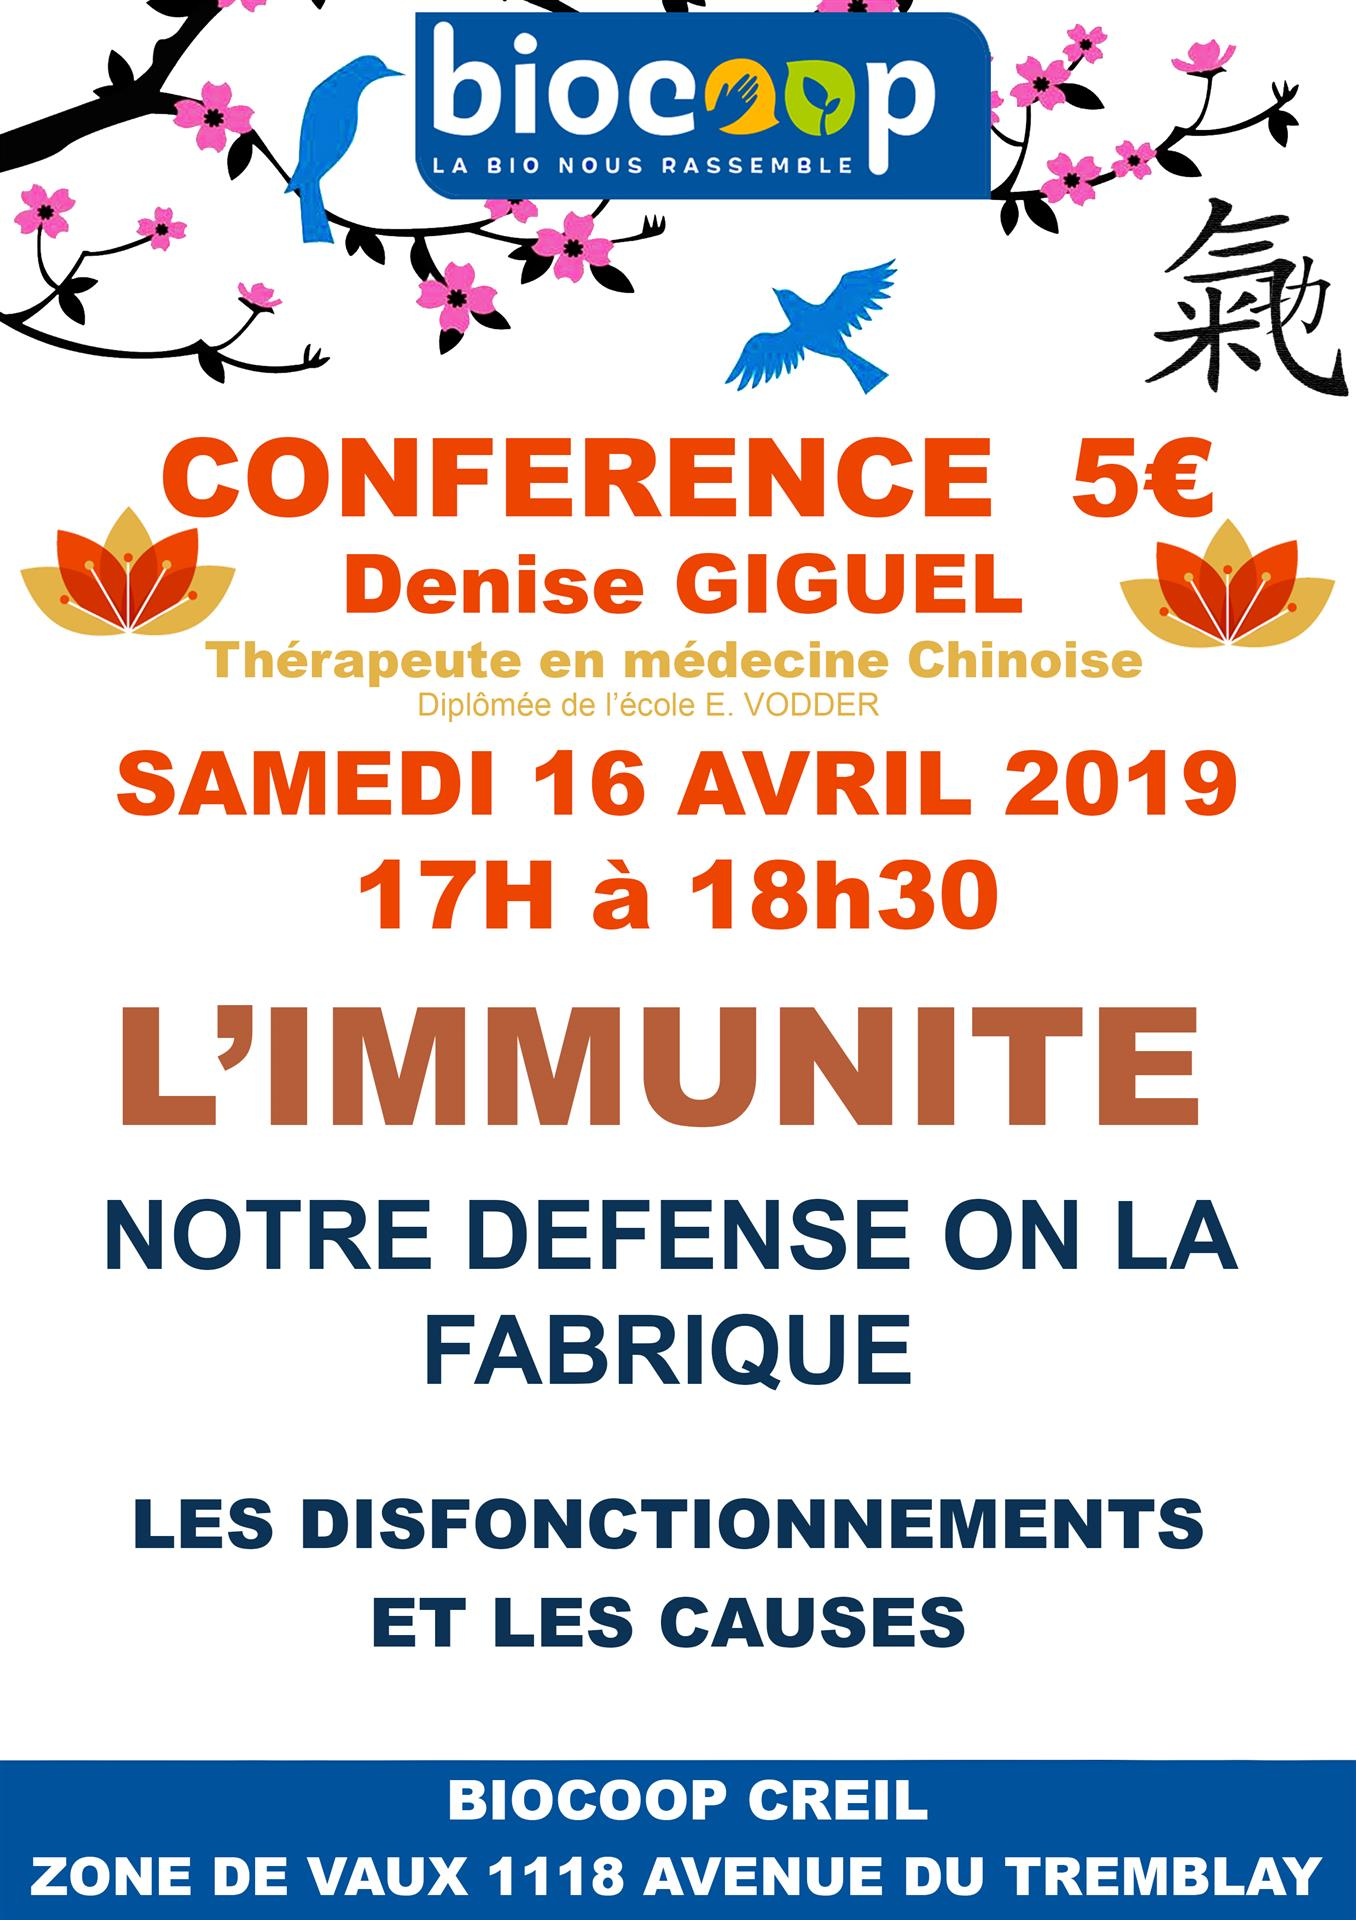 CONFERENCE MEDECINE CHINOISE AVEC DENISE GIGUEL